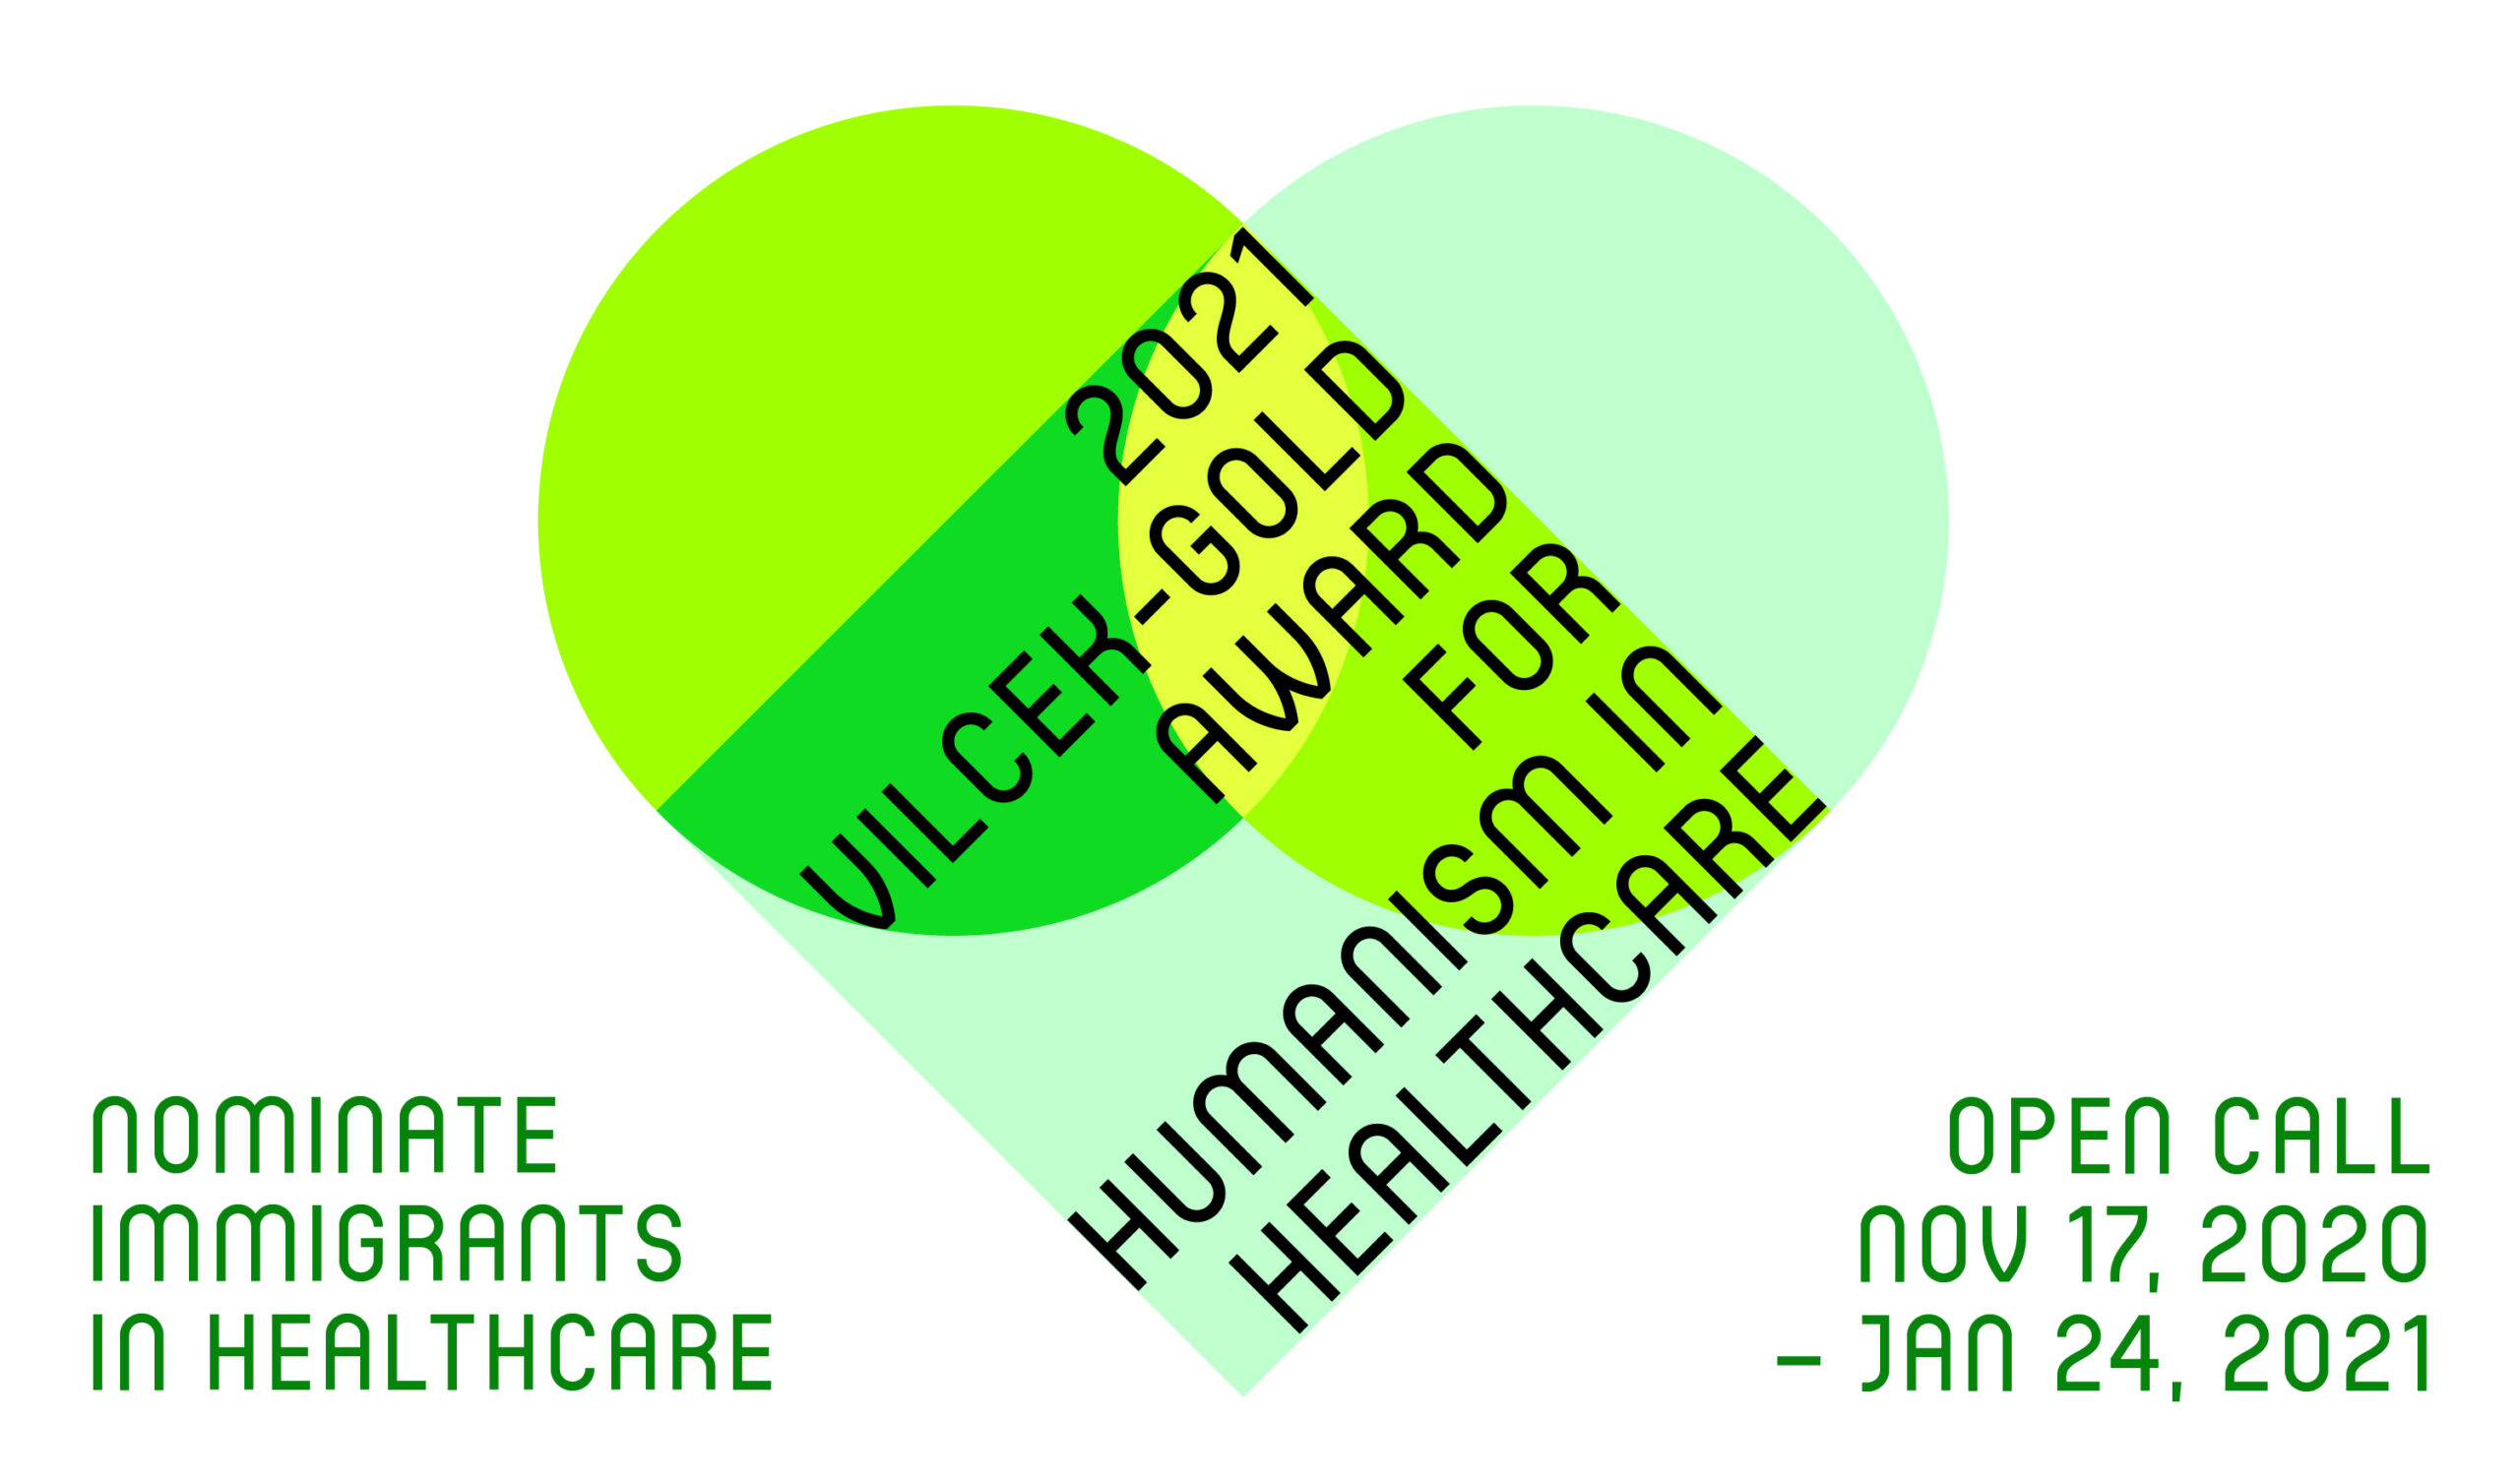 Open call for Vilcek-Gold Award to nominate immigrants in healthcare